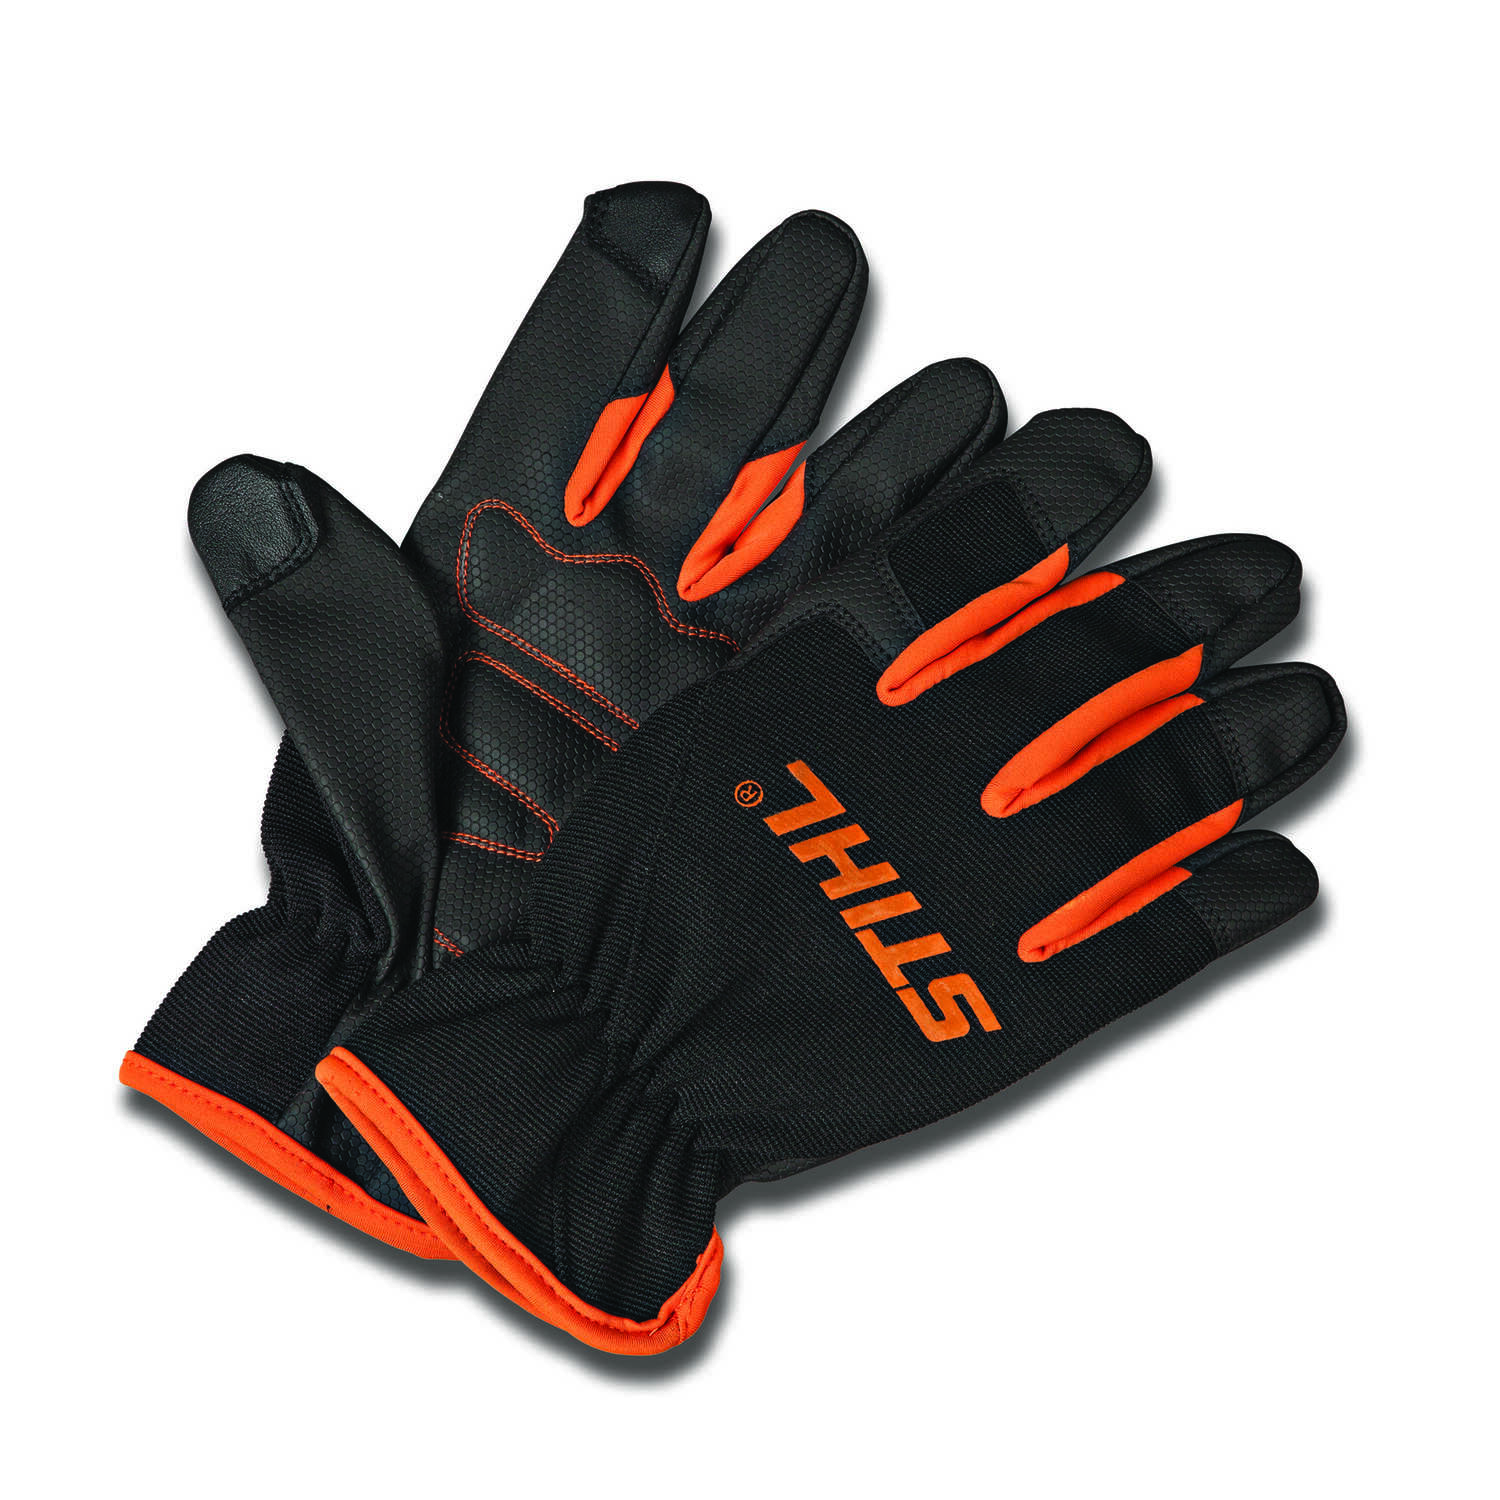 STIHL  M  General Purpose  Black/Orange  Gloves